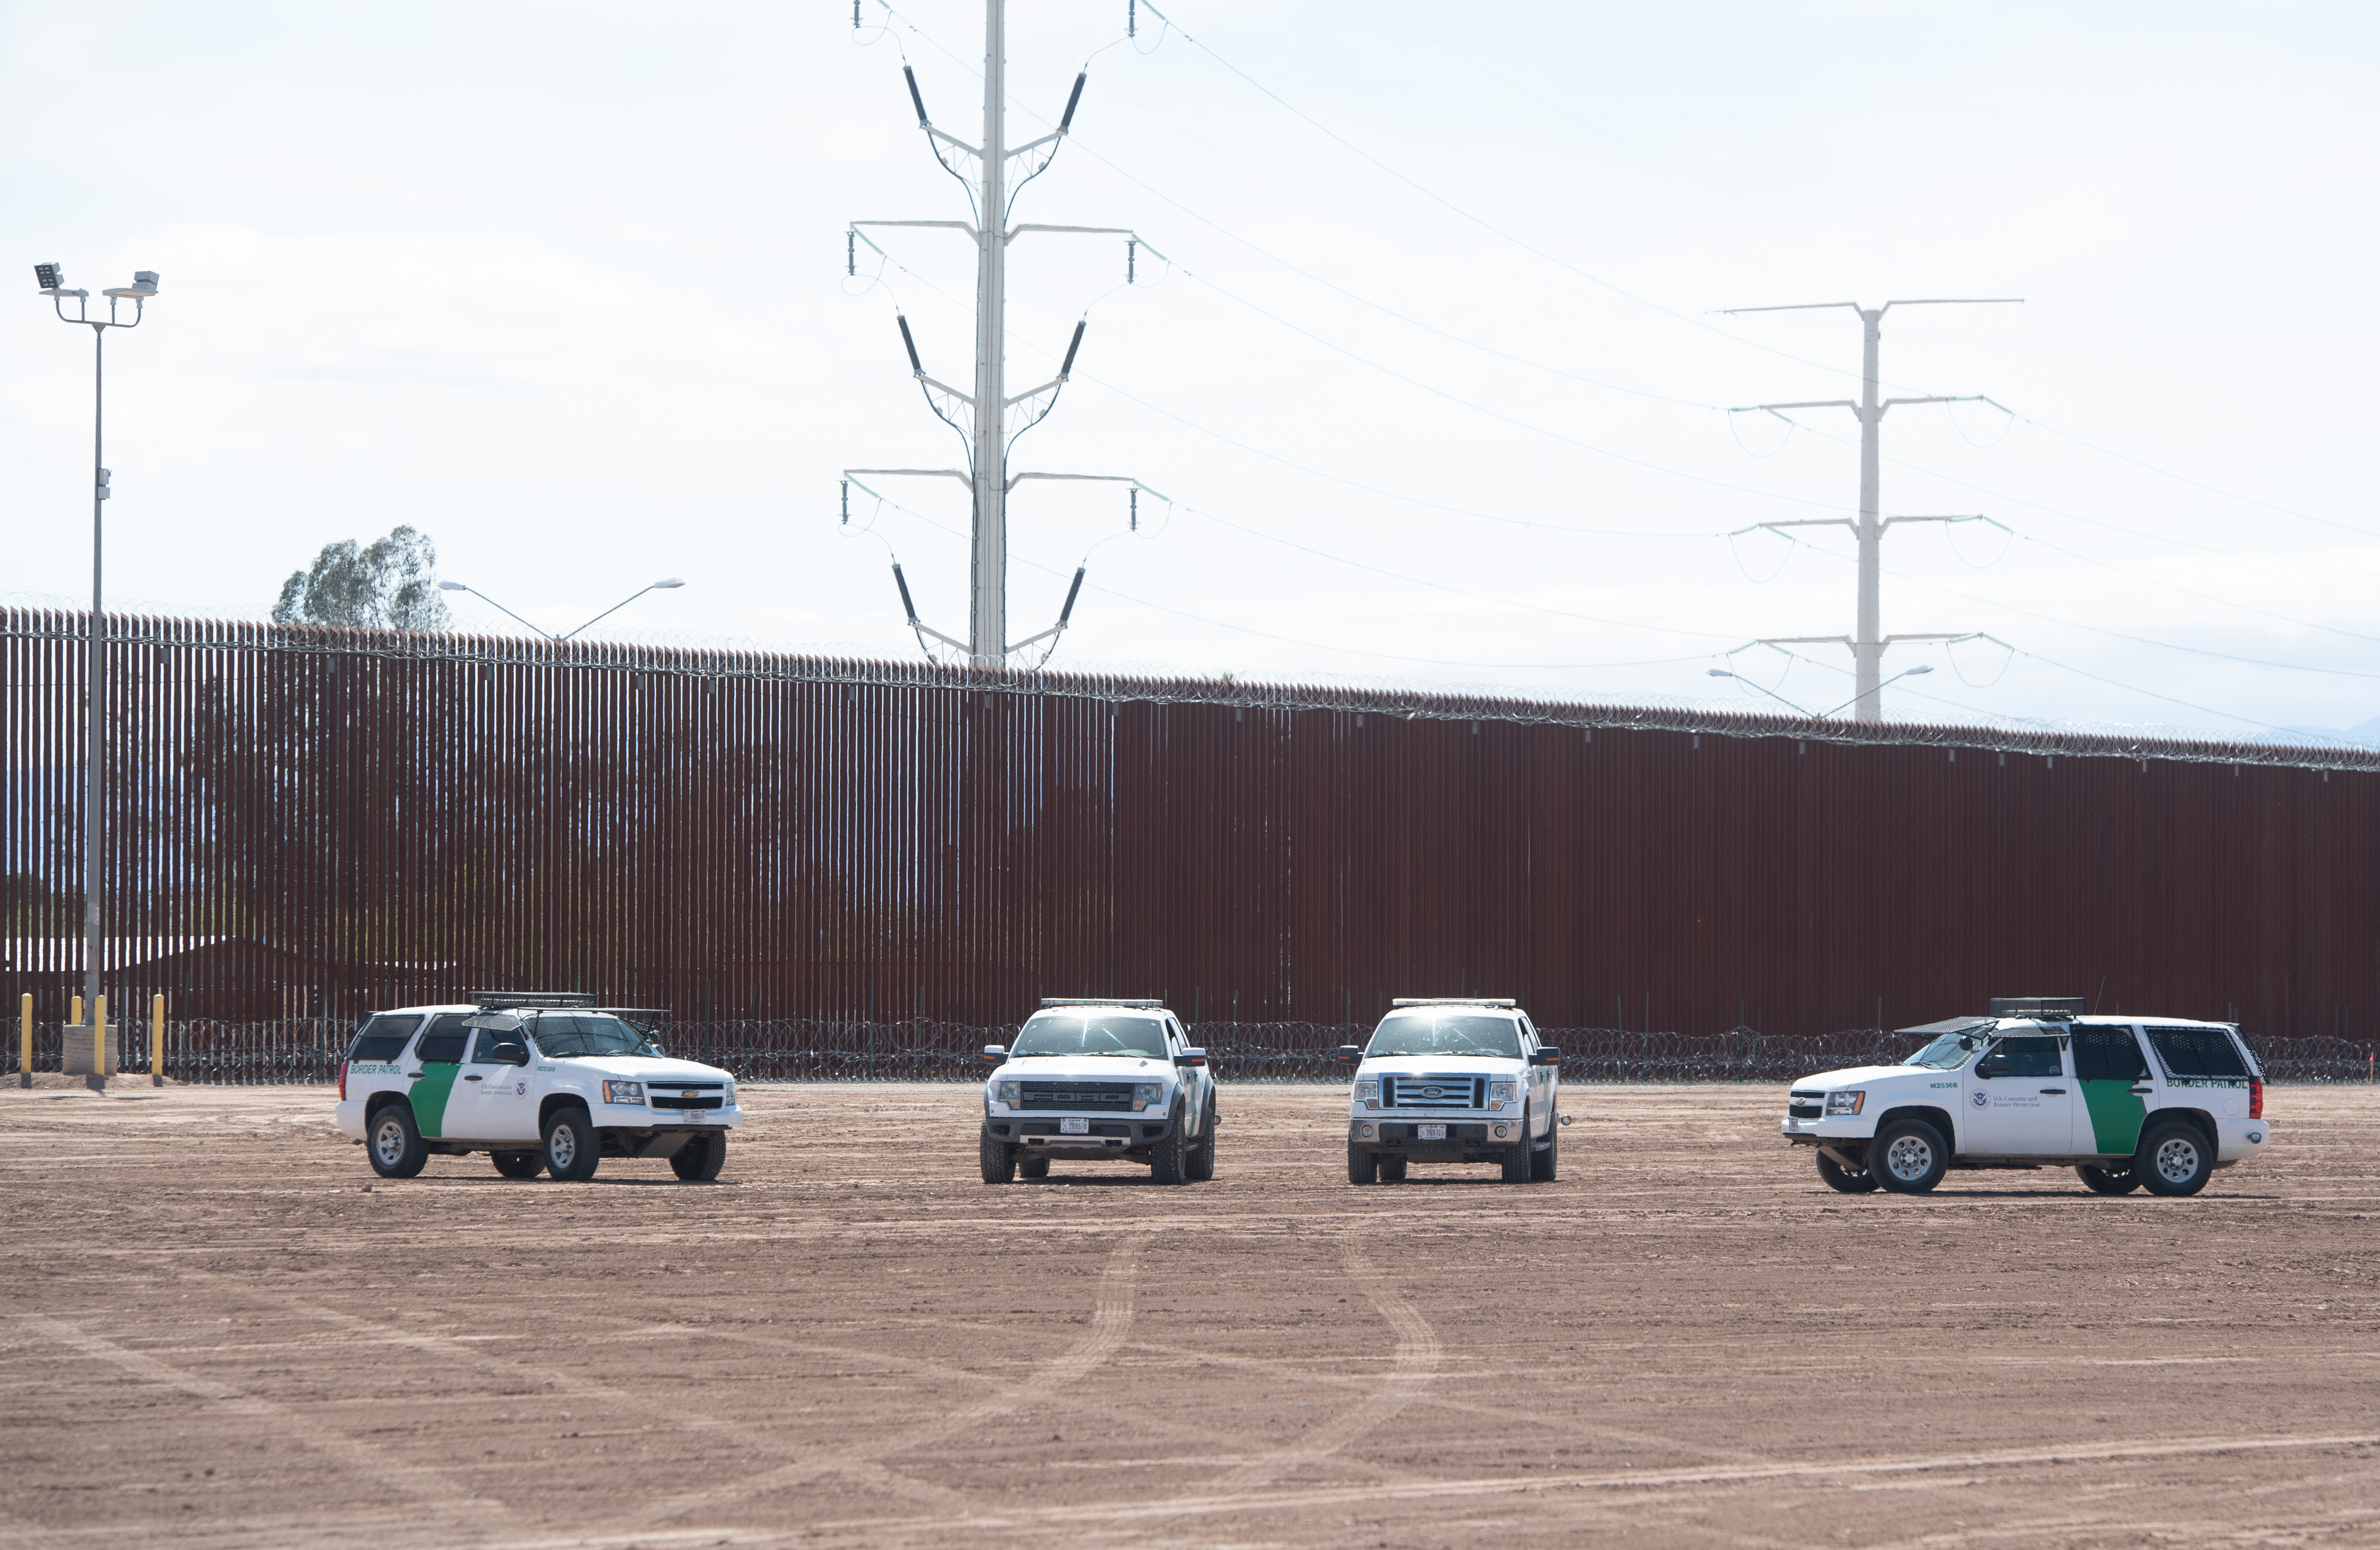 U.S. Customs and Border Patrol cars are seen near the border wall between the United States and Mexico in Calexico